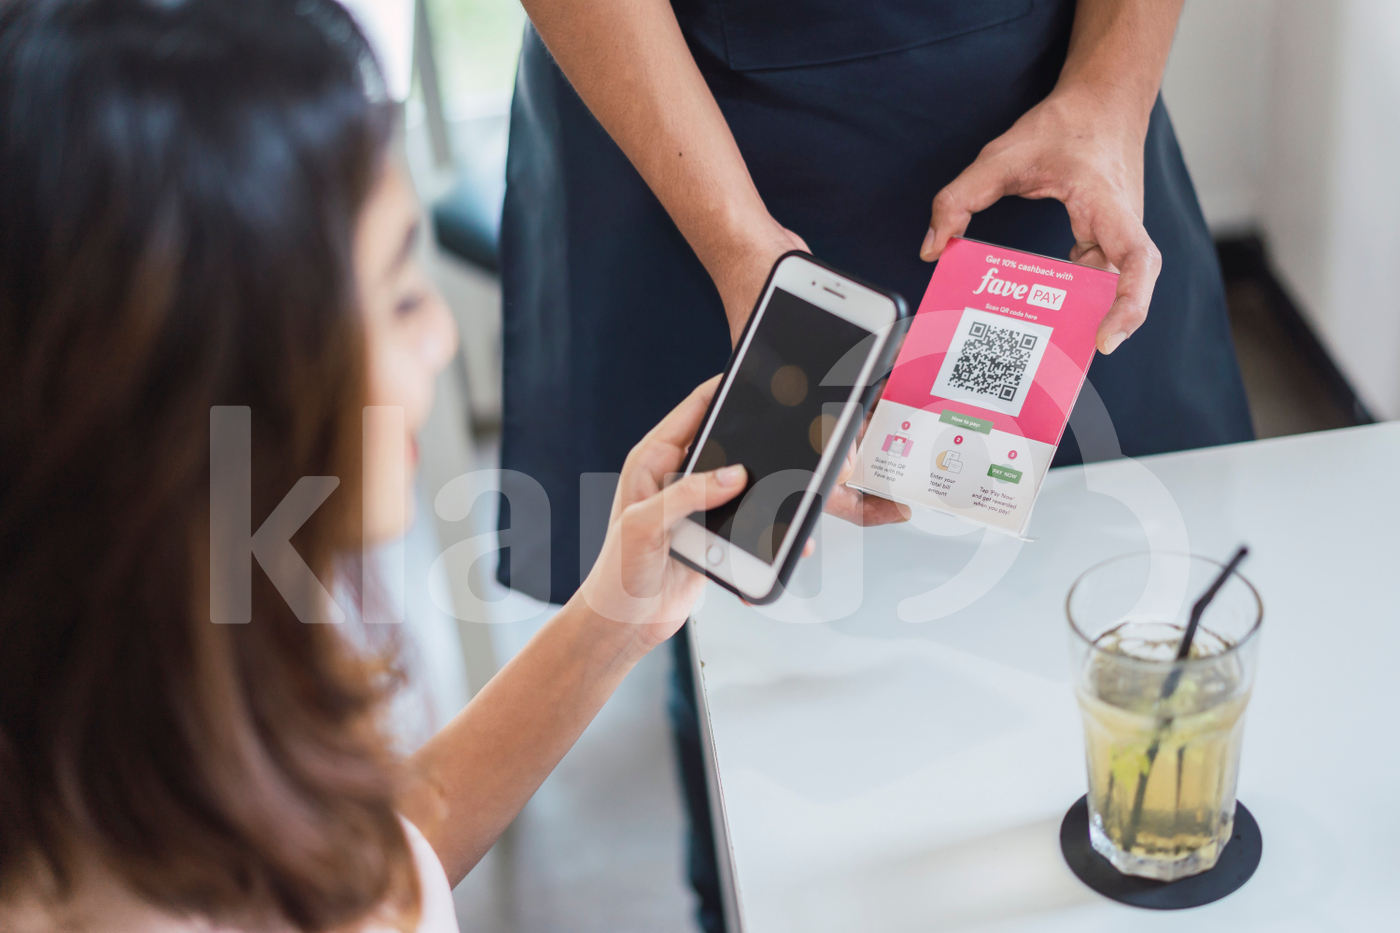 Woman scanning QR code to make payment